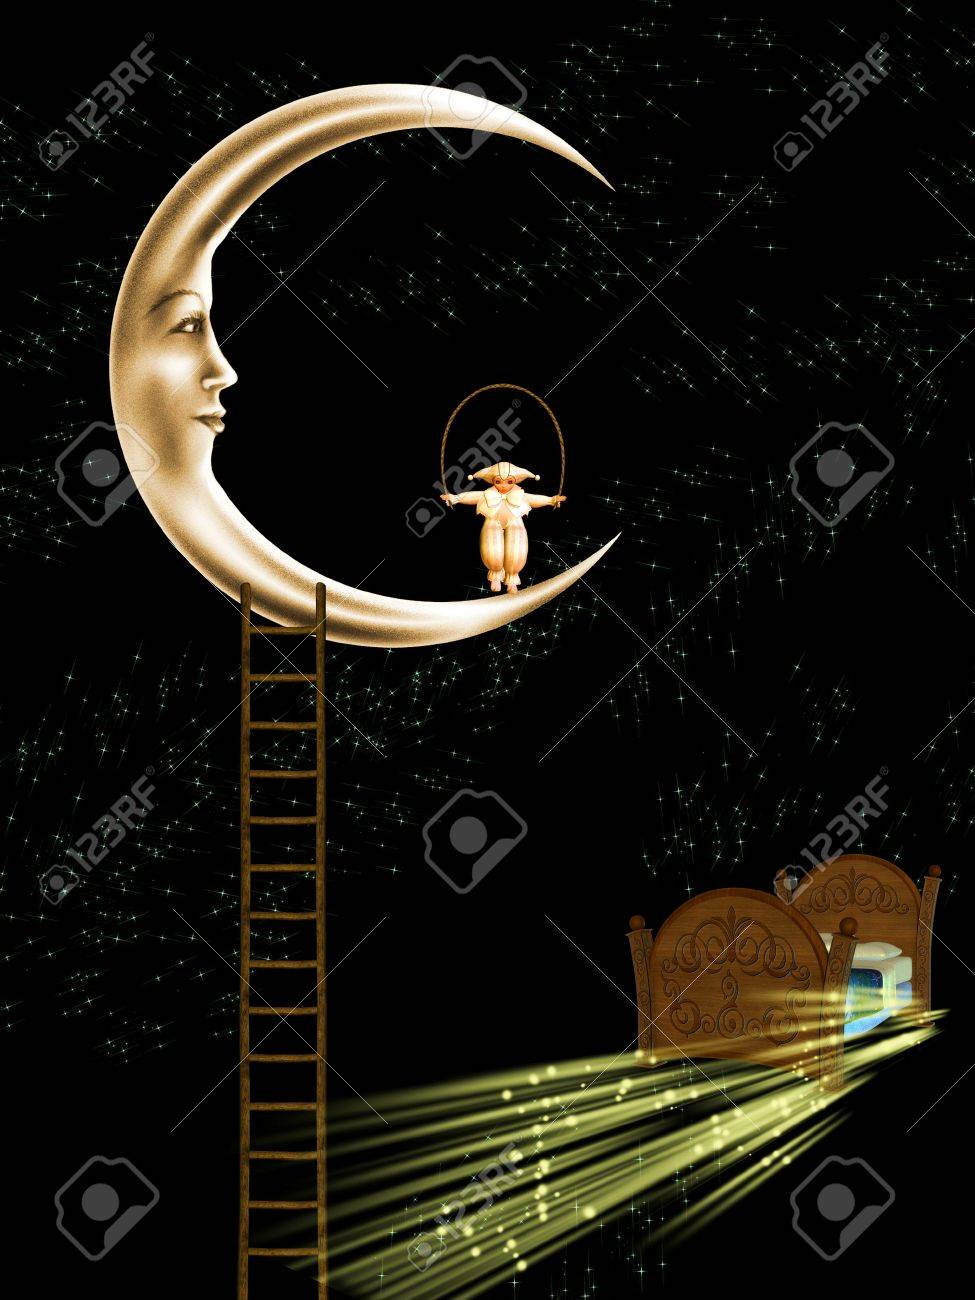 Kids at night with moon royalty free stock photography image - Kid Playing Jump Rope On The Moon Stock Photo 11008240